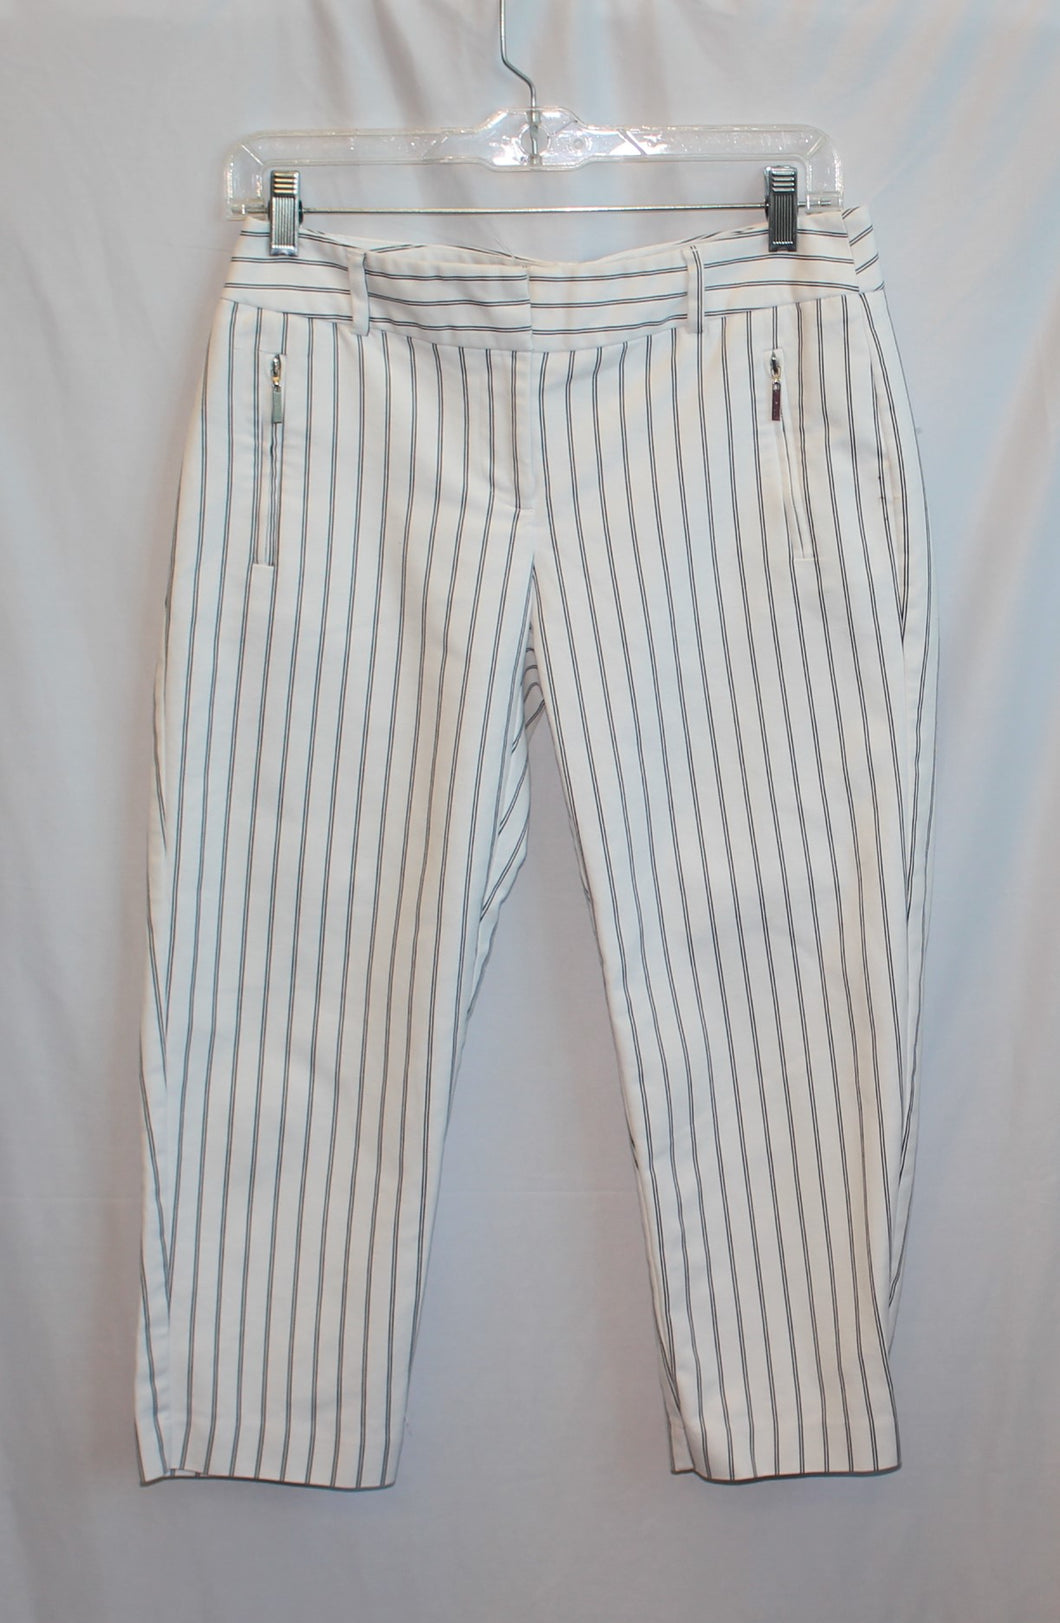 Women's white with black stripes pant       Size 4       3/31B